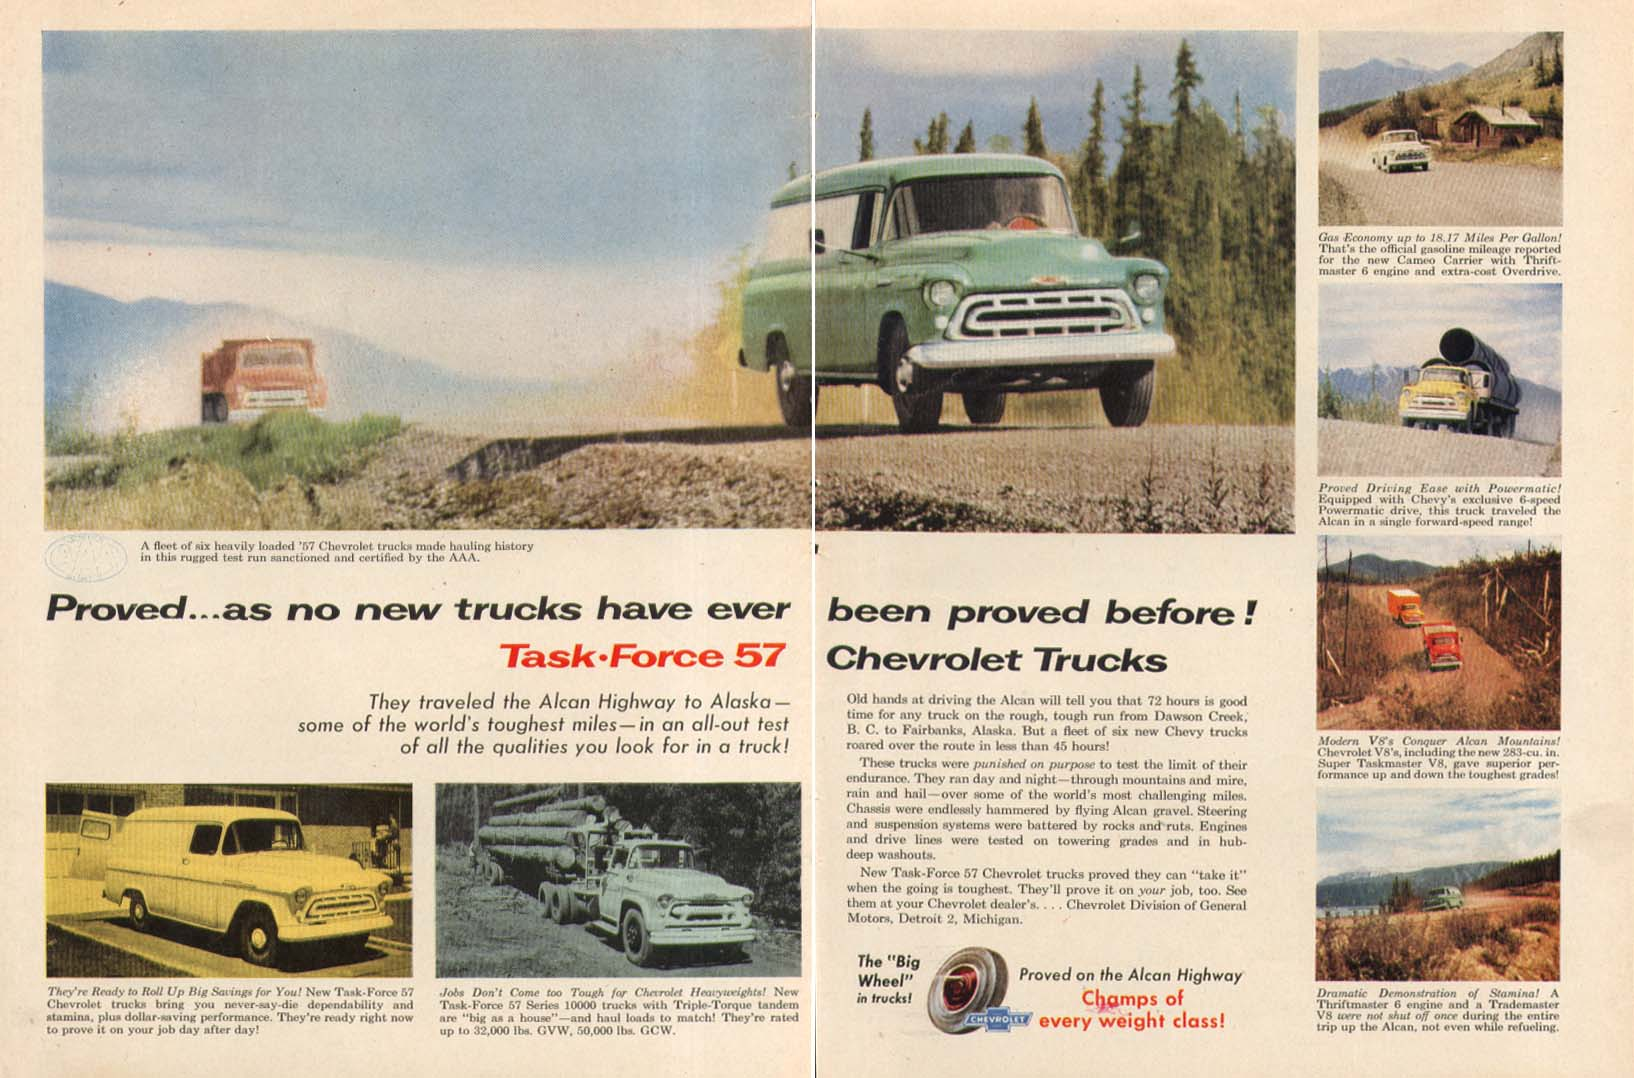 Proved as no new trucks have ever been proved Chevrolet Truck ad 1957